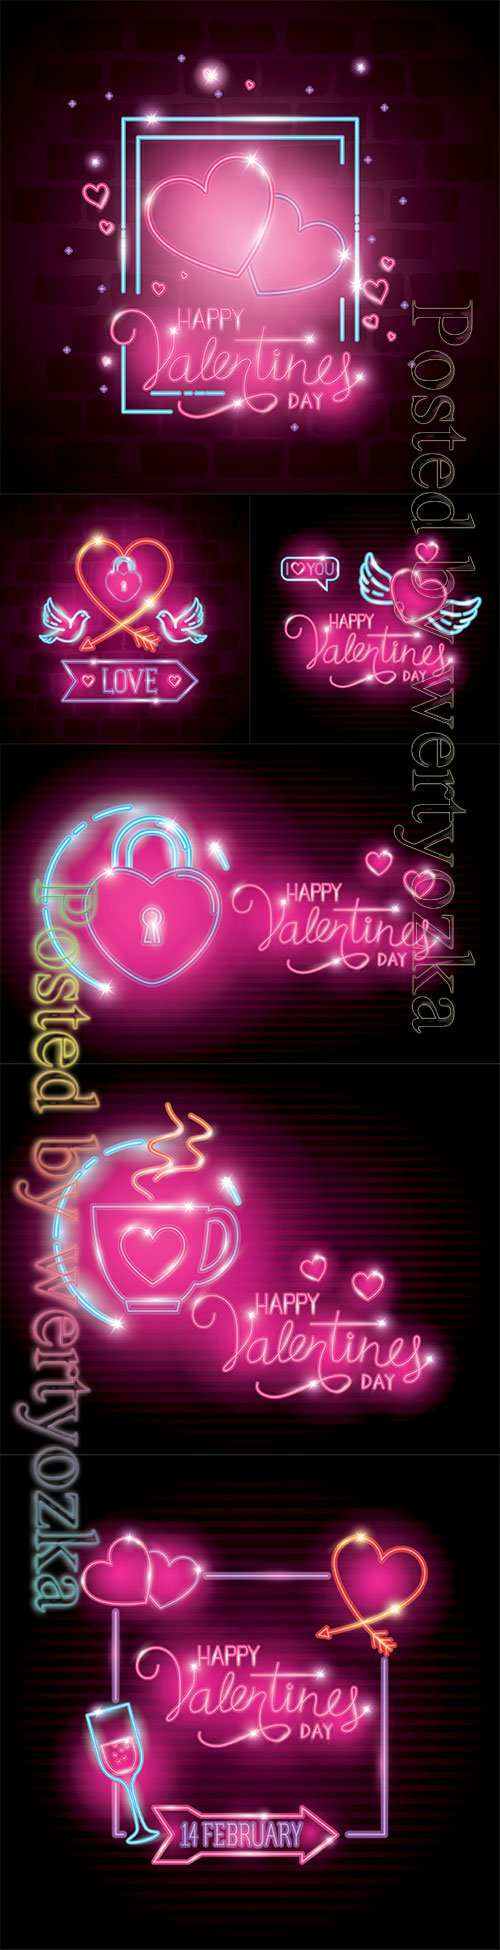 Happy valentines day with heart and wings of neon lights vector illustration design